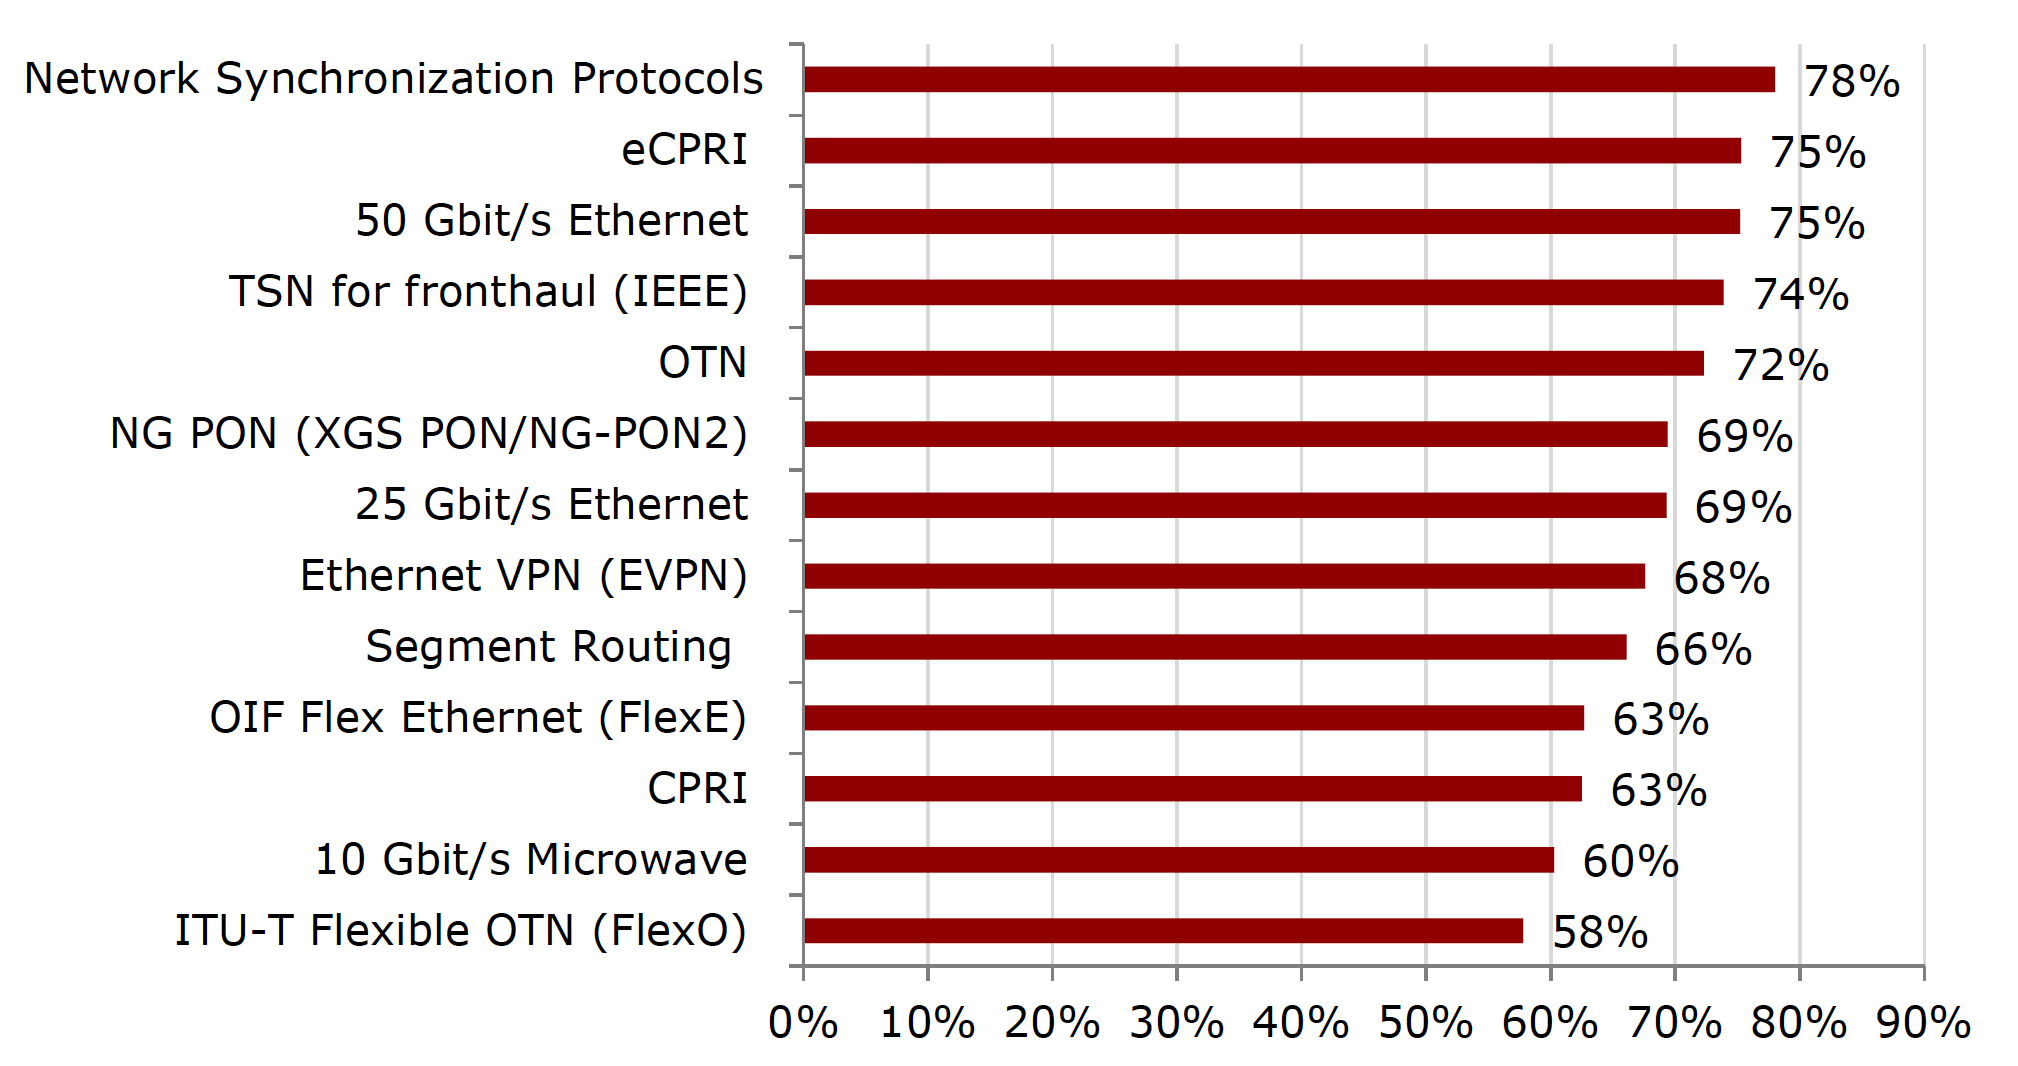 Figure 3: How important are the following technologies and protocols for your 5G transport network? (Ranked by percentage important or critical for each). Source: Heavy Reading 5G Network & Service Strategies: 2020 Operator Survey